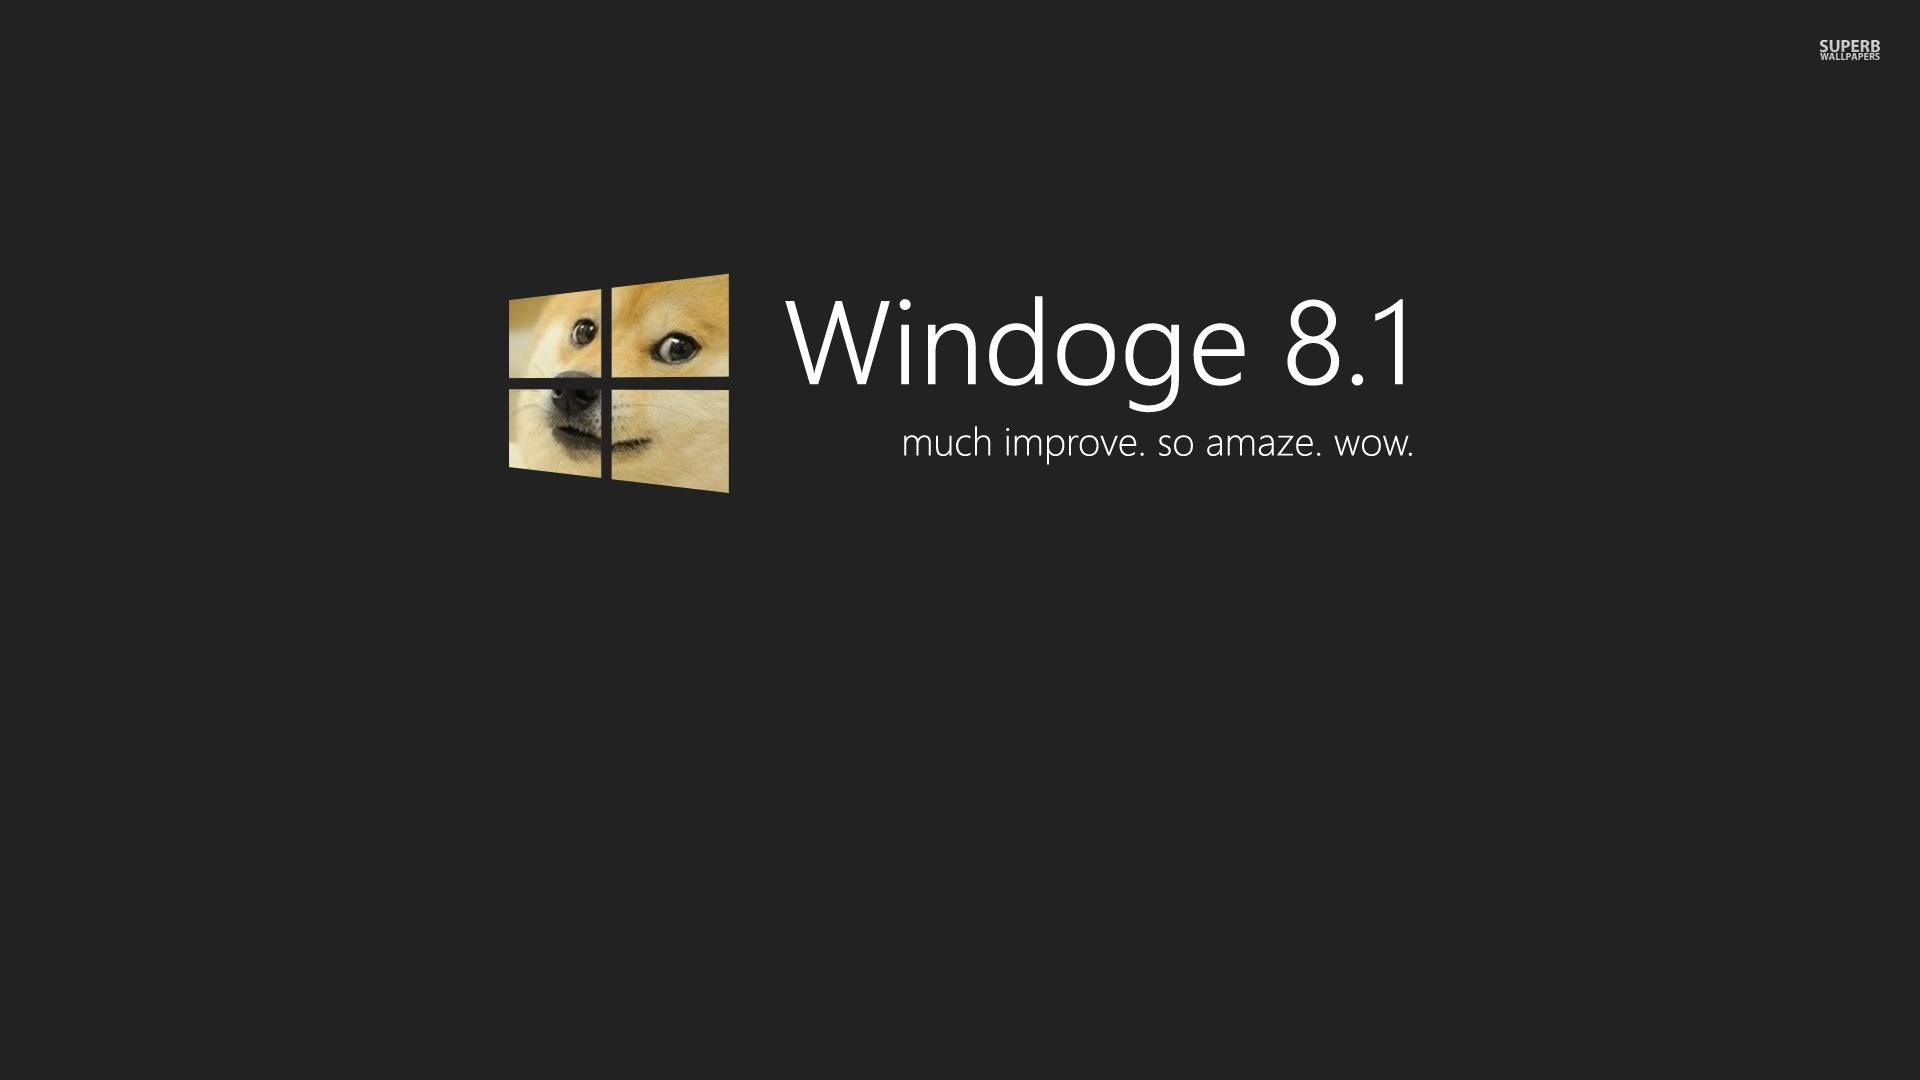 Doge Windows 81 Wallpaper   MixHD wallpapers 1920x1080